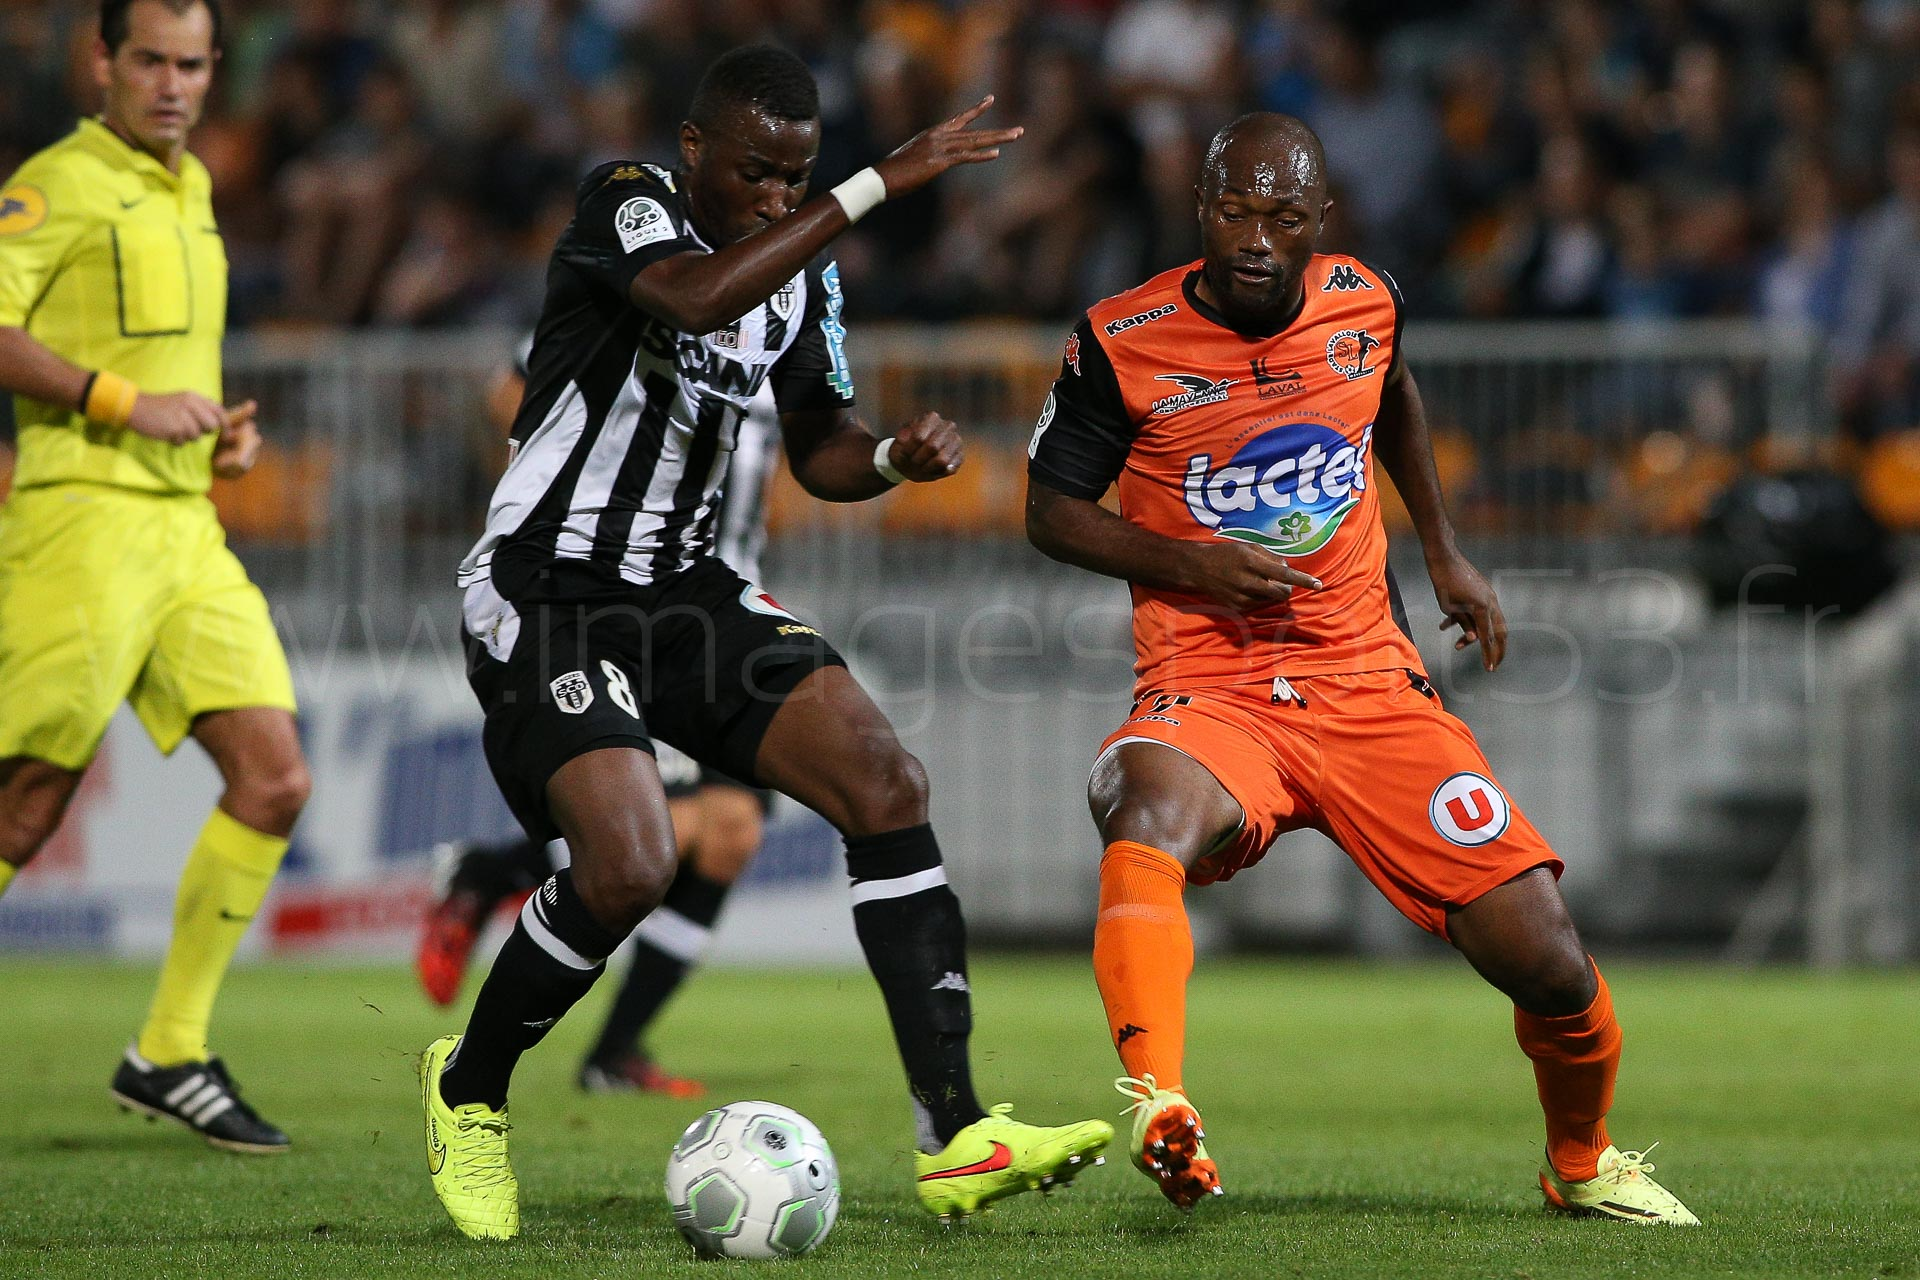 NG-Ligue2-1415-J07-Laval-Angers_26